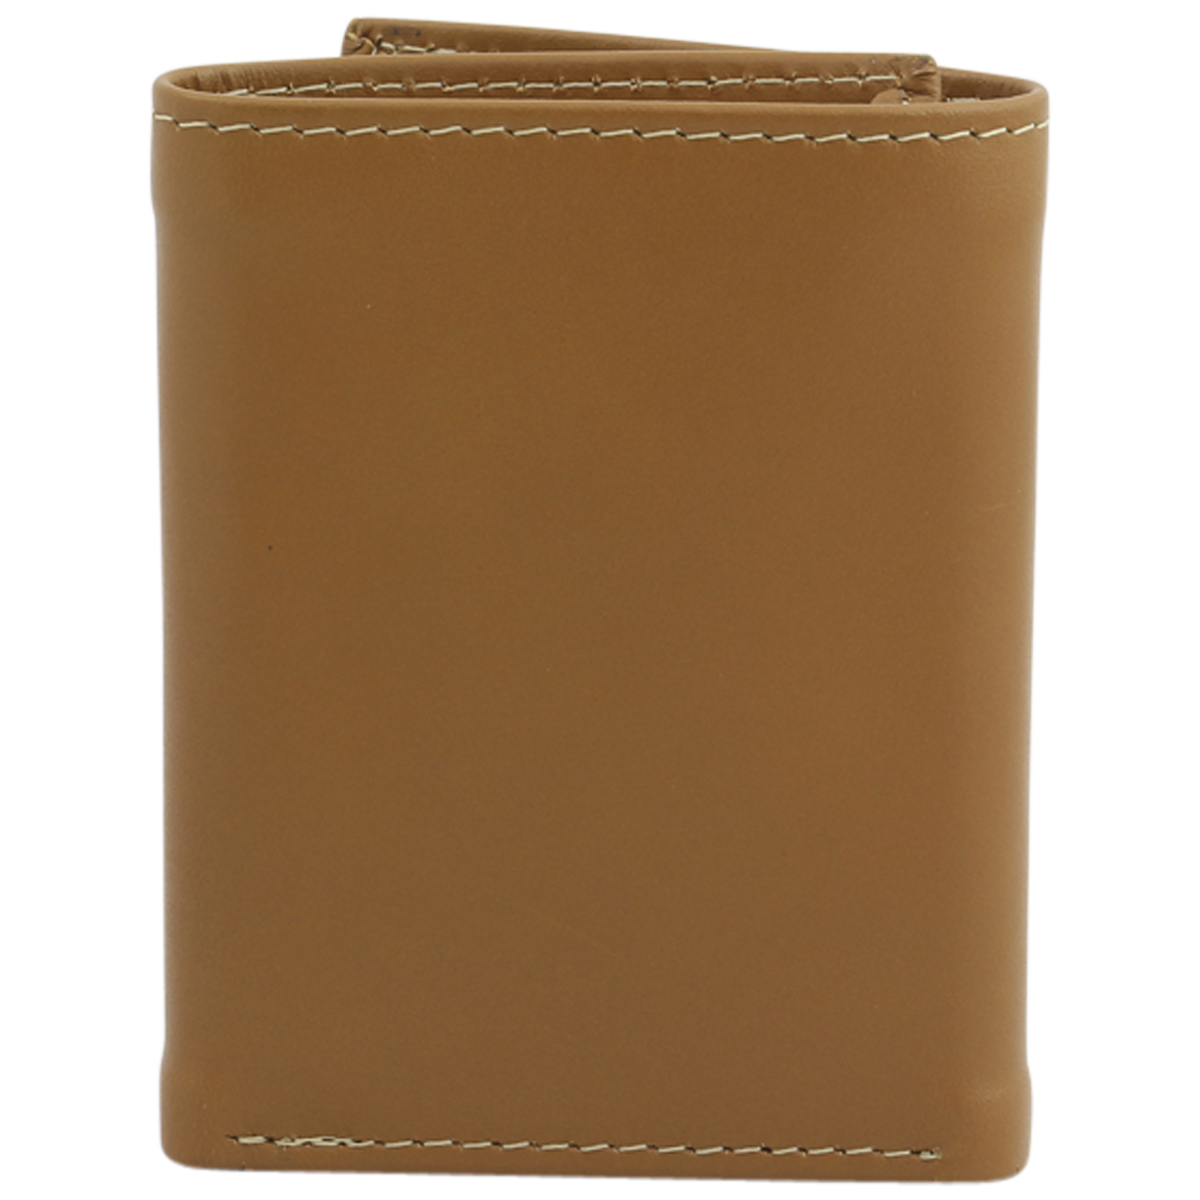 Timberland-Men-039-s-Cloudy-Genuine-Leather-Tri-Fold-Wallet thumbnail 8